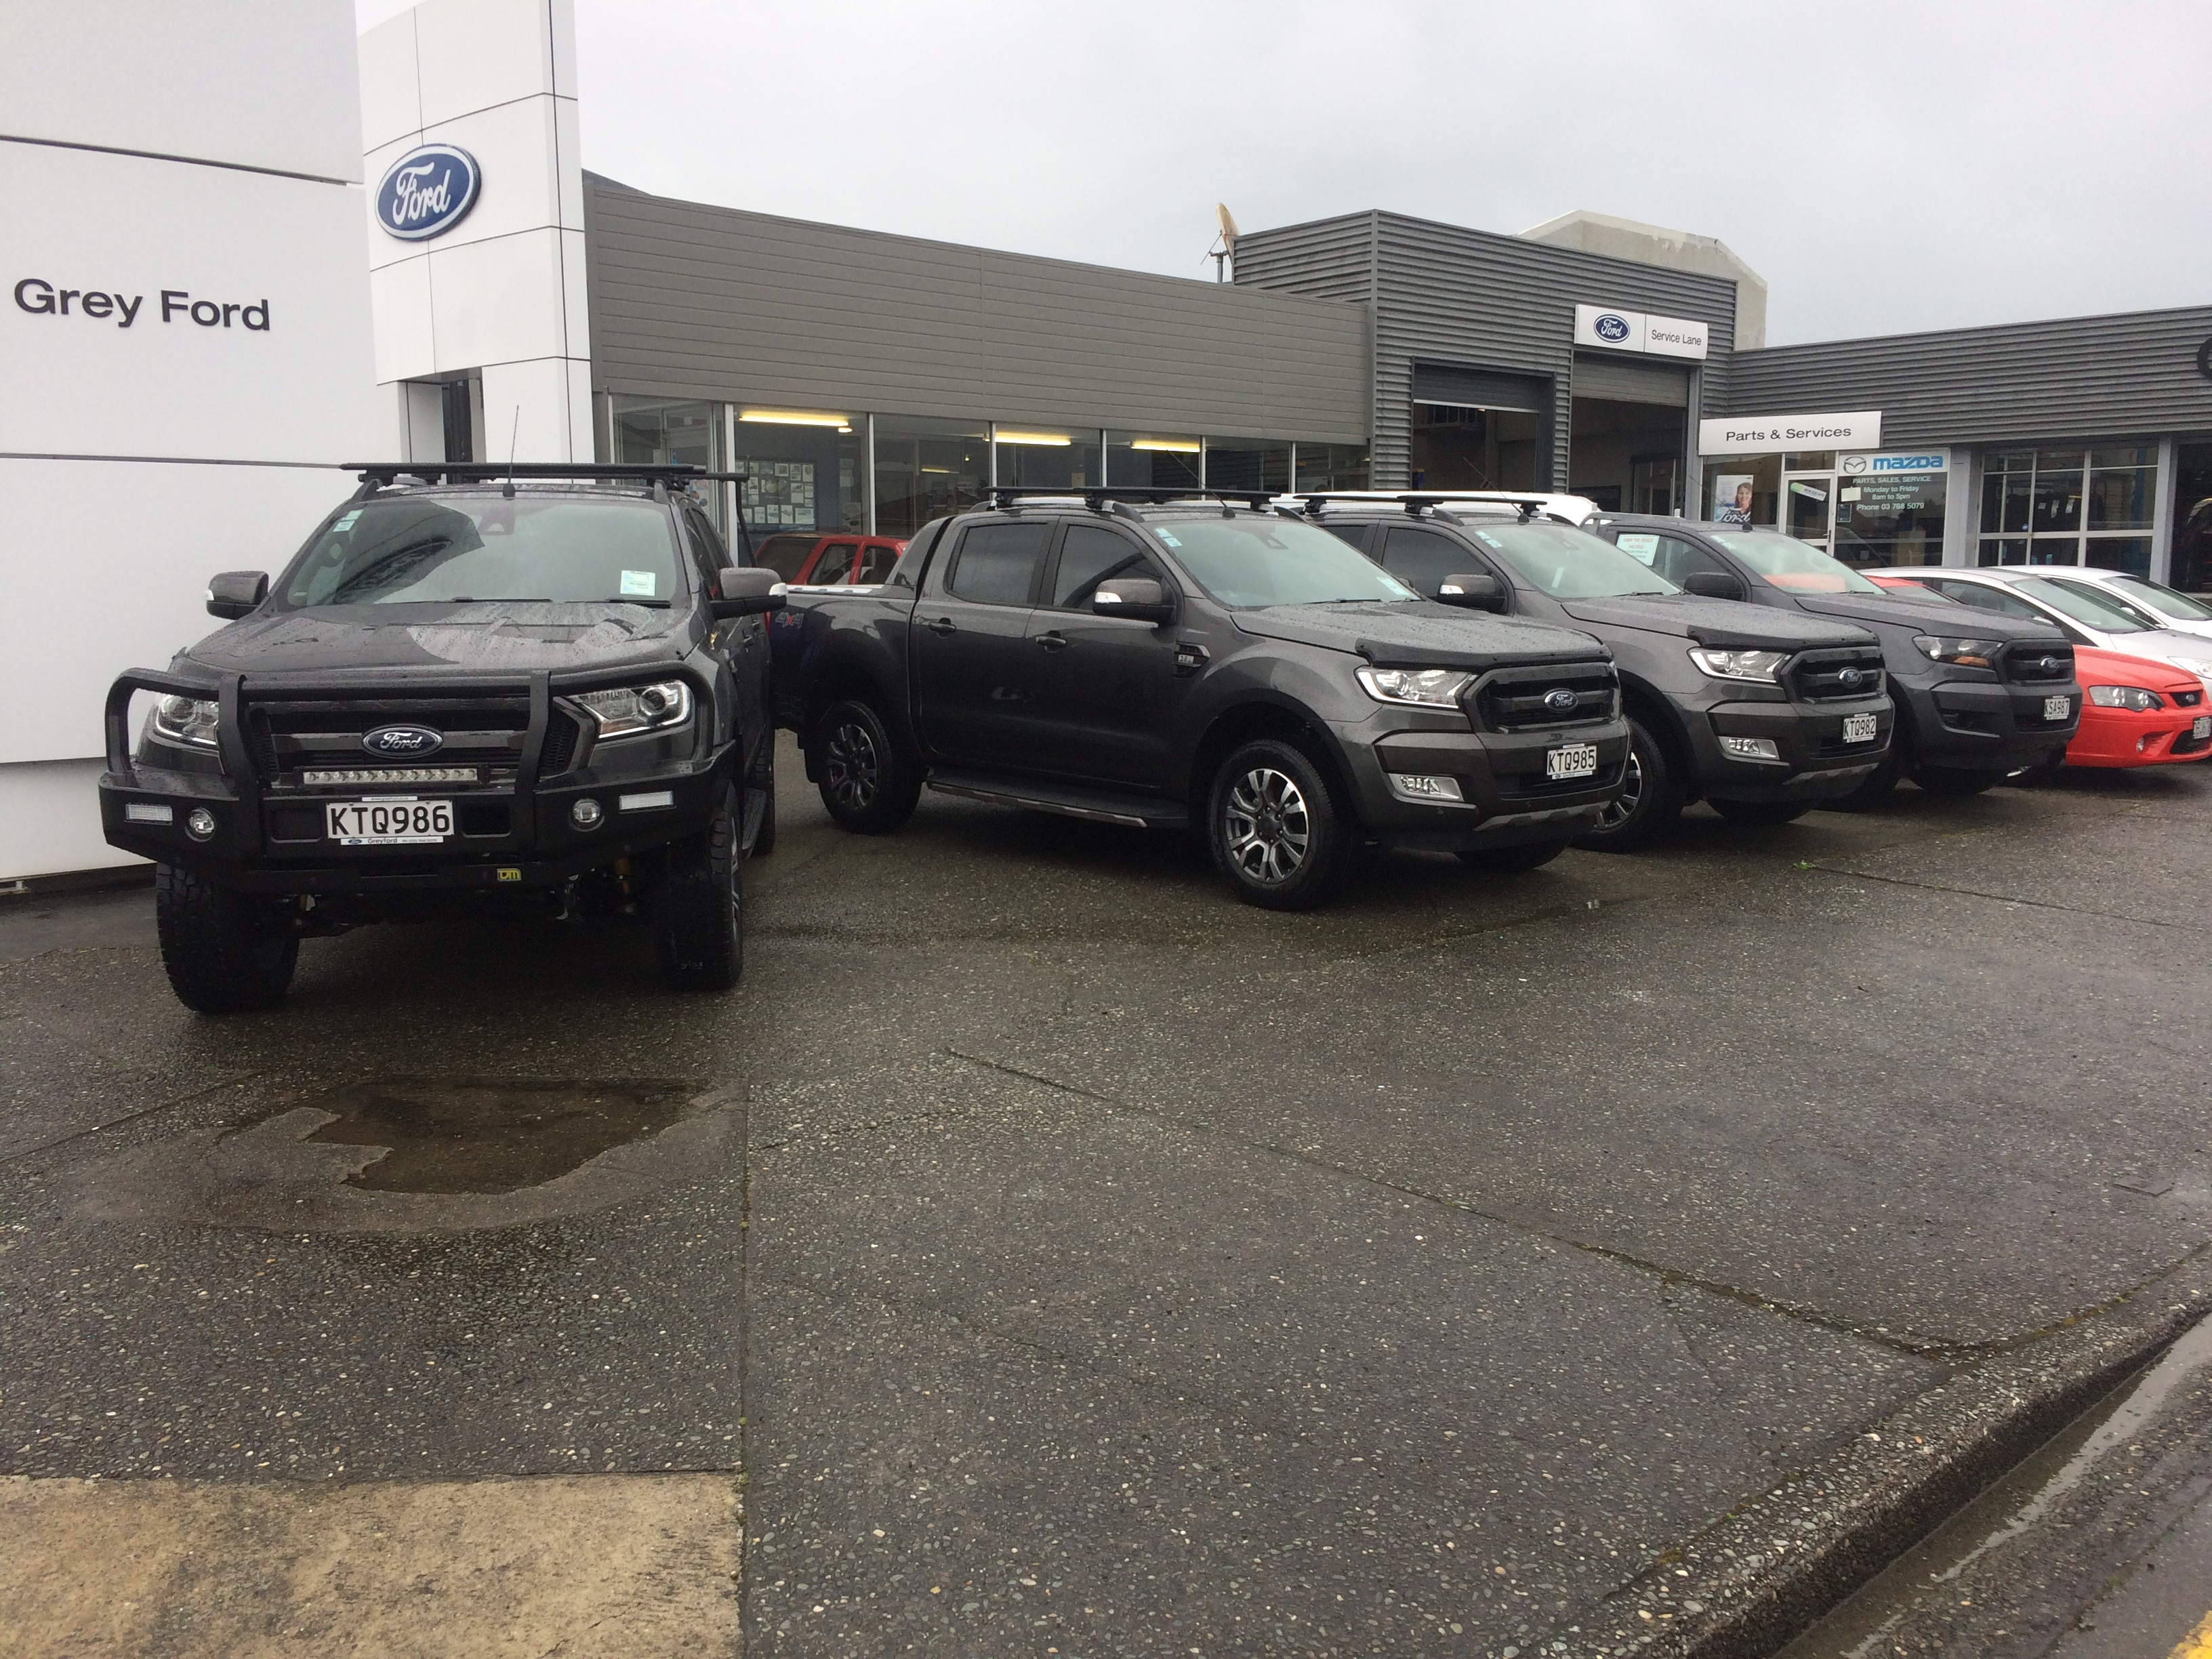 Ford Ranger at Grey Ford, Greymouth